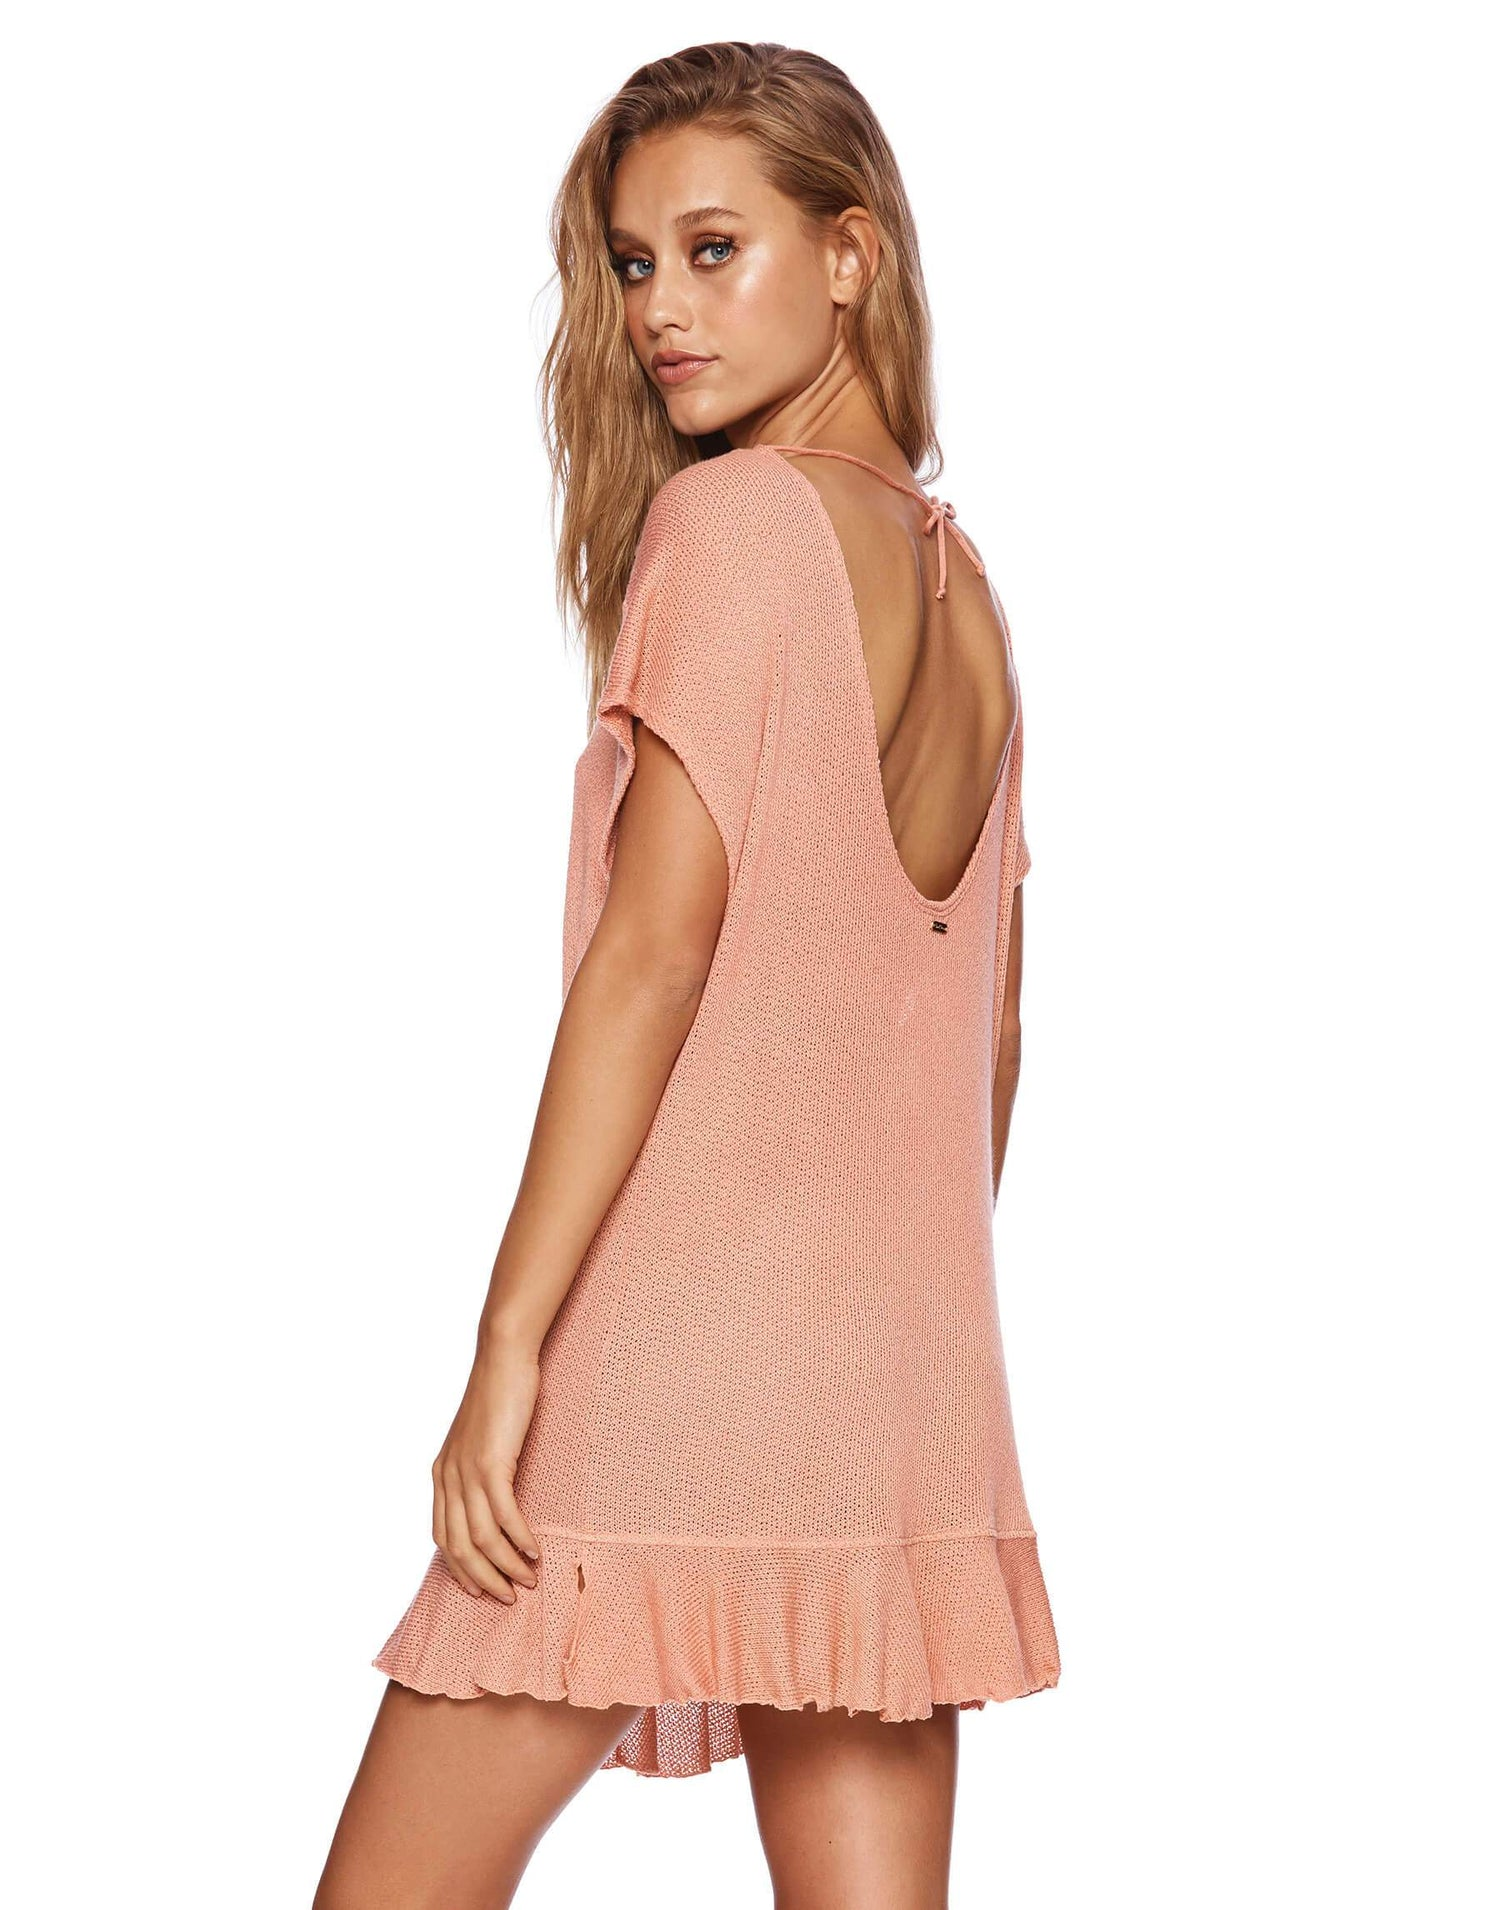 Annika Pink Tunic Mini Dress with Ruffles - side view